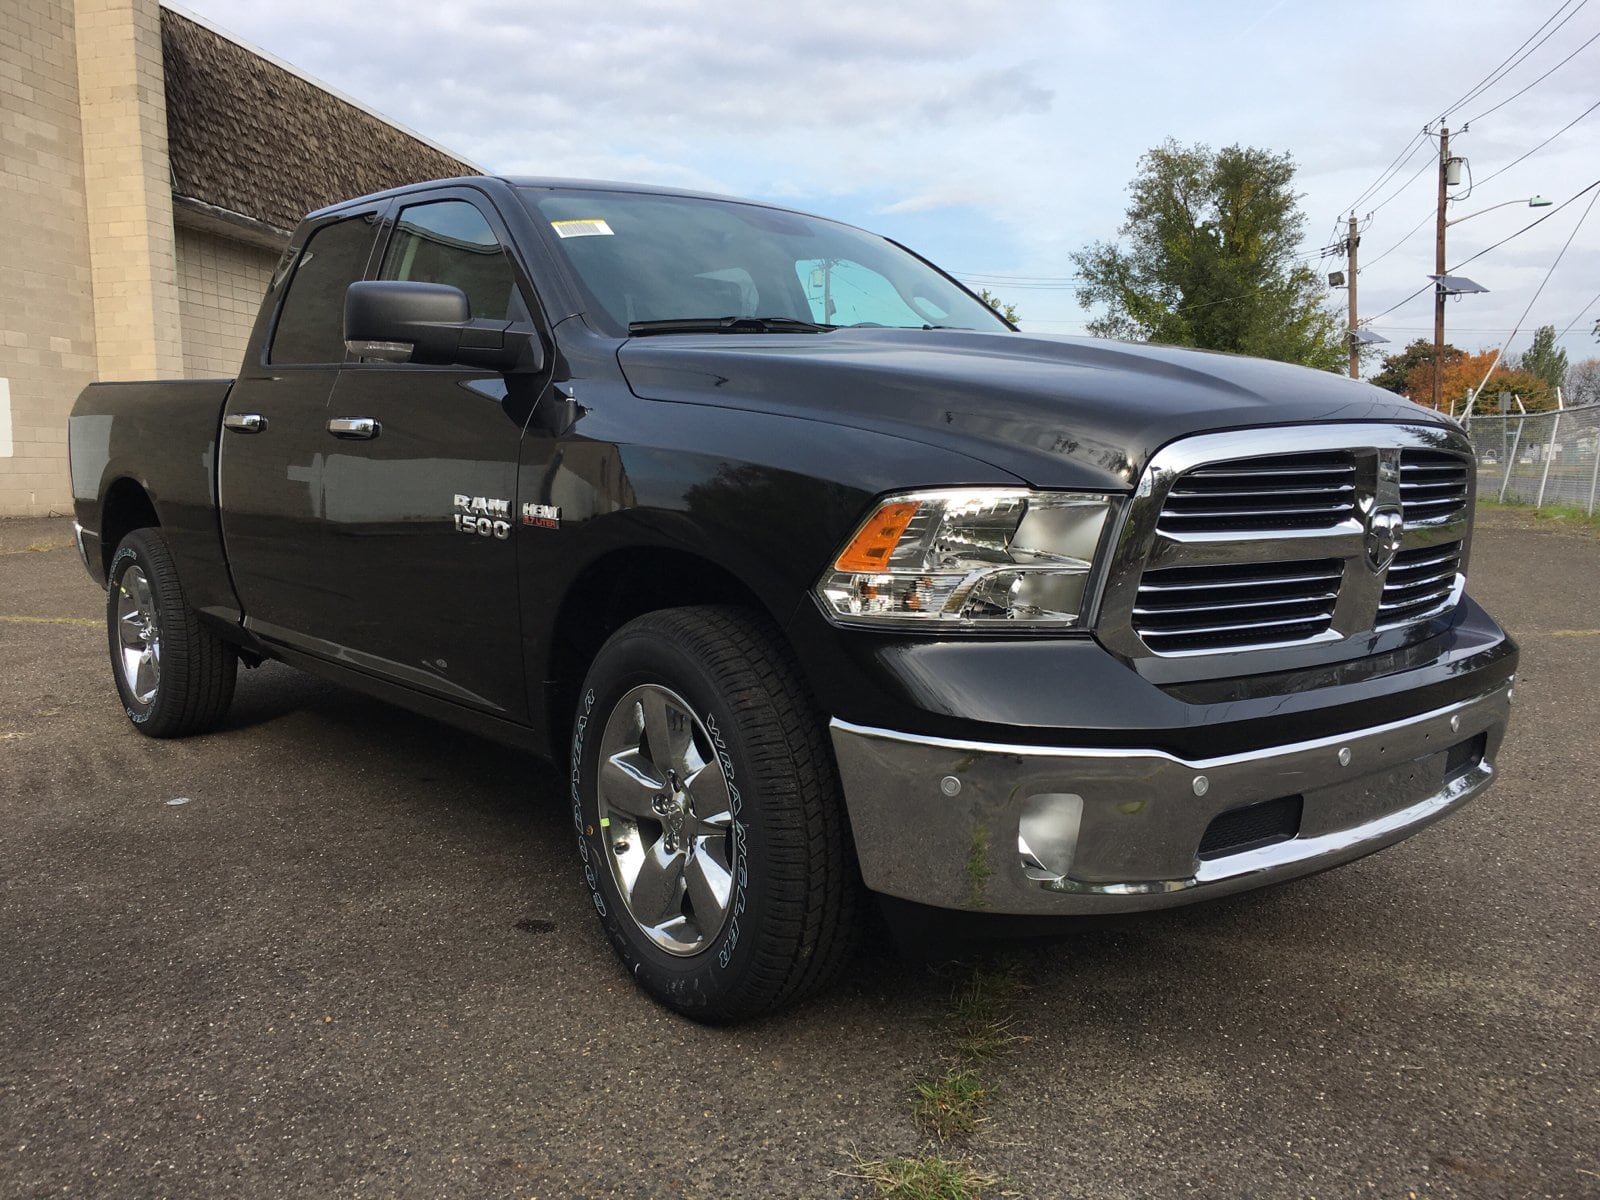 2018 Ram 1500 Quad Cab 4x4, Pickup #1843002 - photo 4